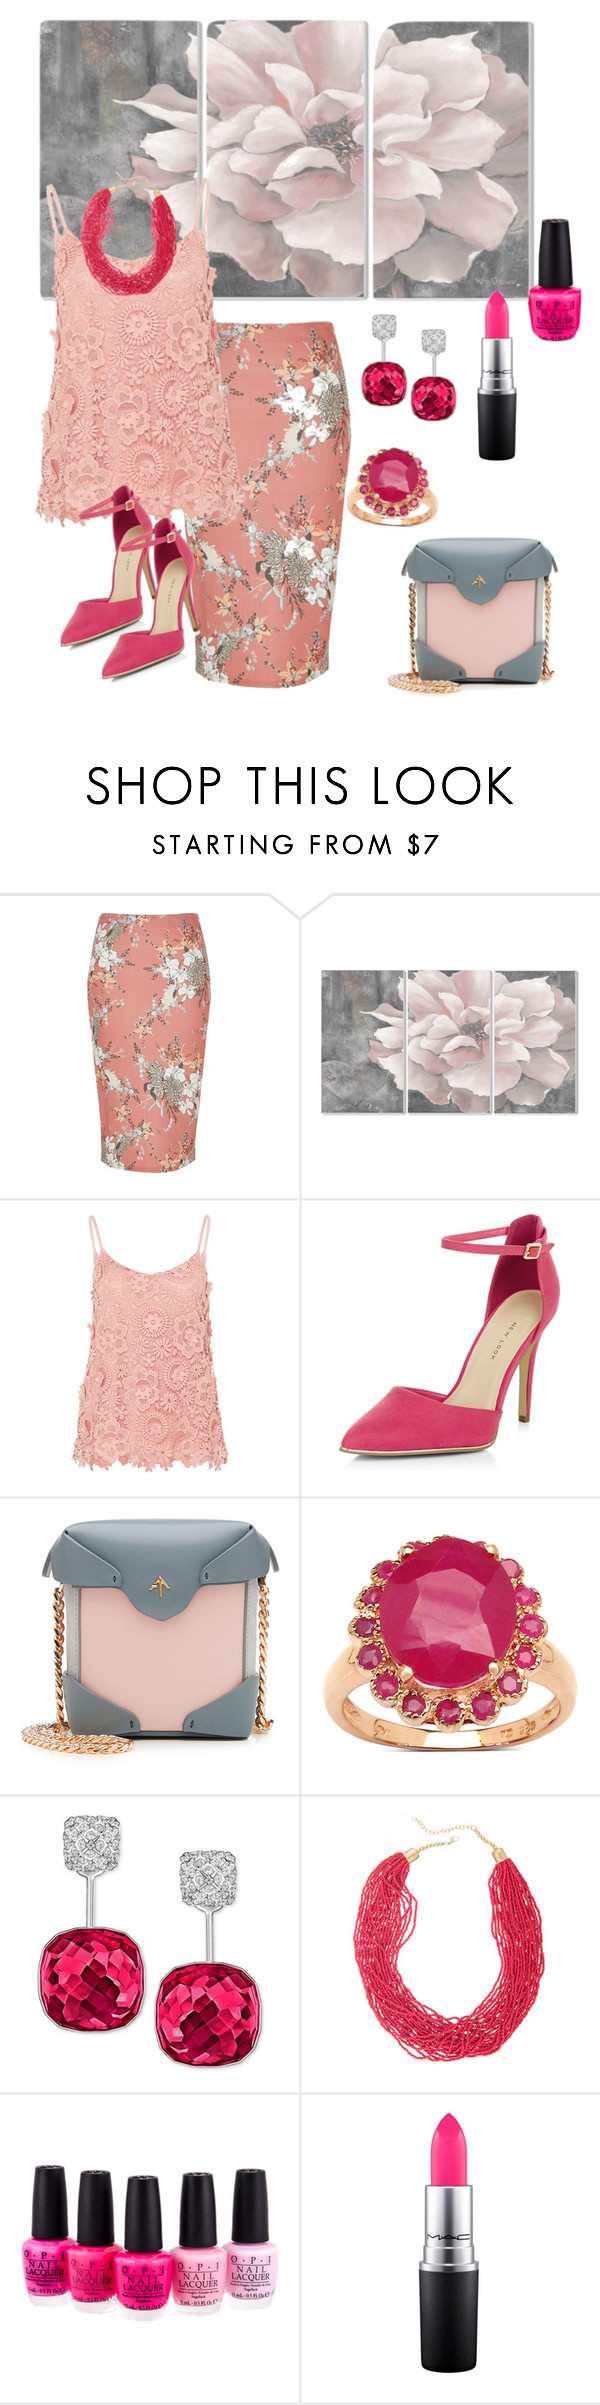 """""""Pink, I Think🌸 www.polyvore.com/la_mode/group.show?id=199380"""" by parnett ❤ liked on Polyvore featuring River Island, Stupell, Hallhuber, New Look, MANU Atelier, Malaika, Swarovski, Mixit, OPI and MAC Cosmetics"""